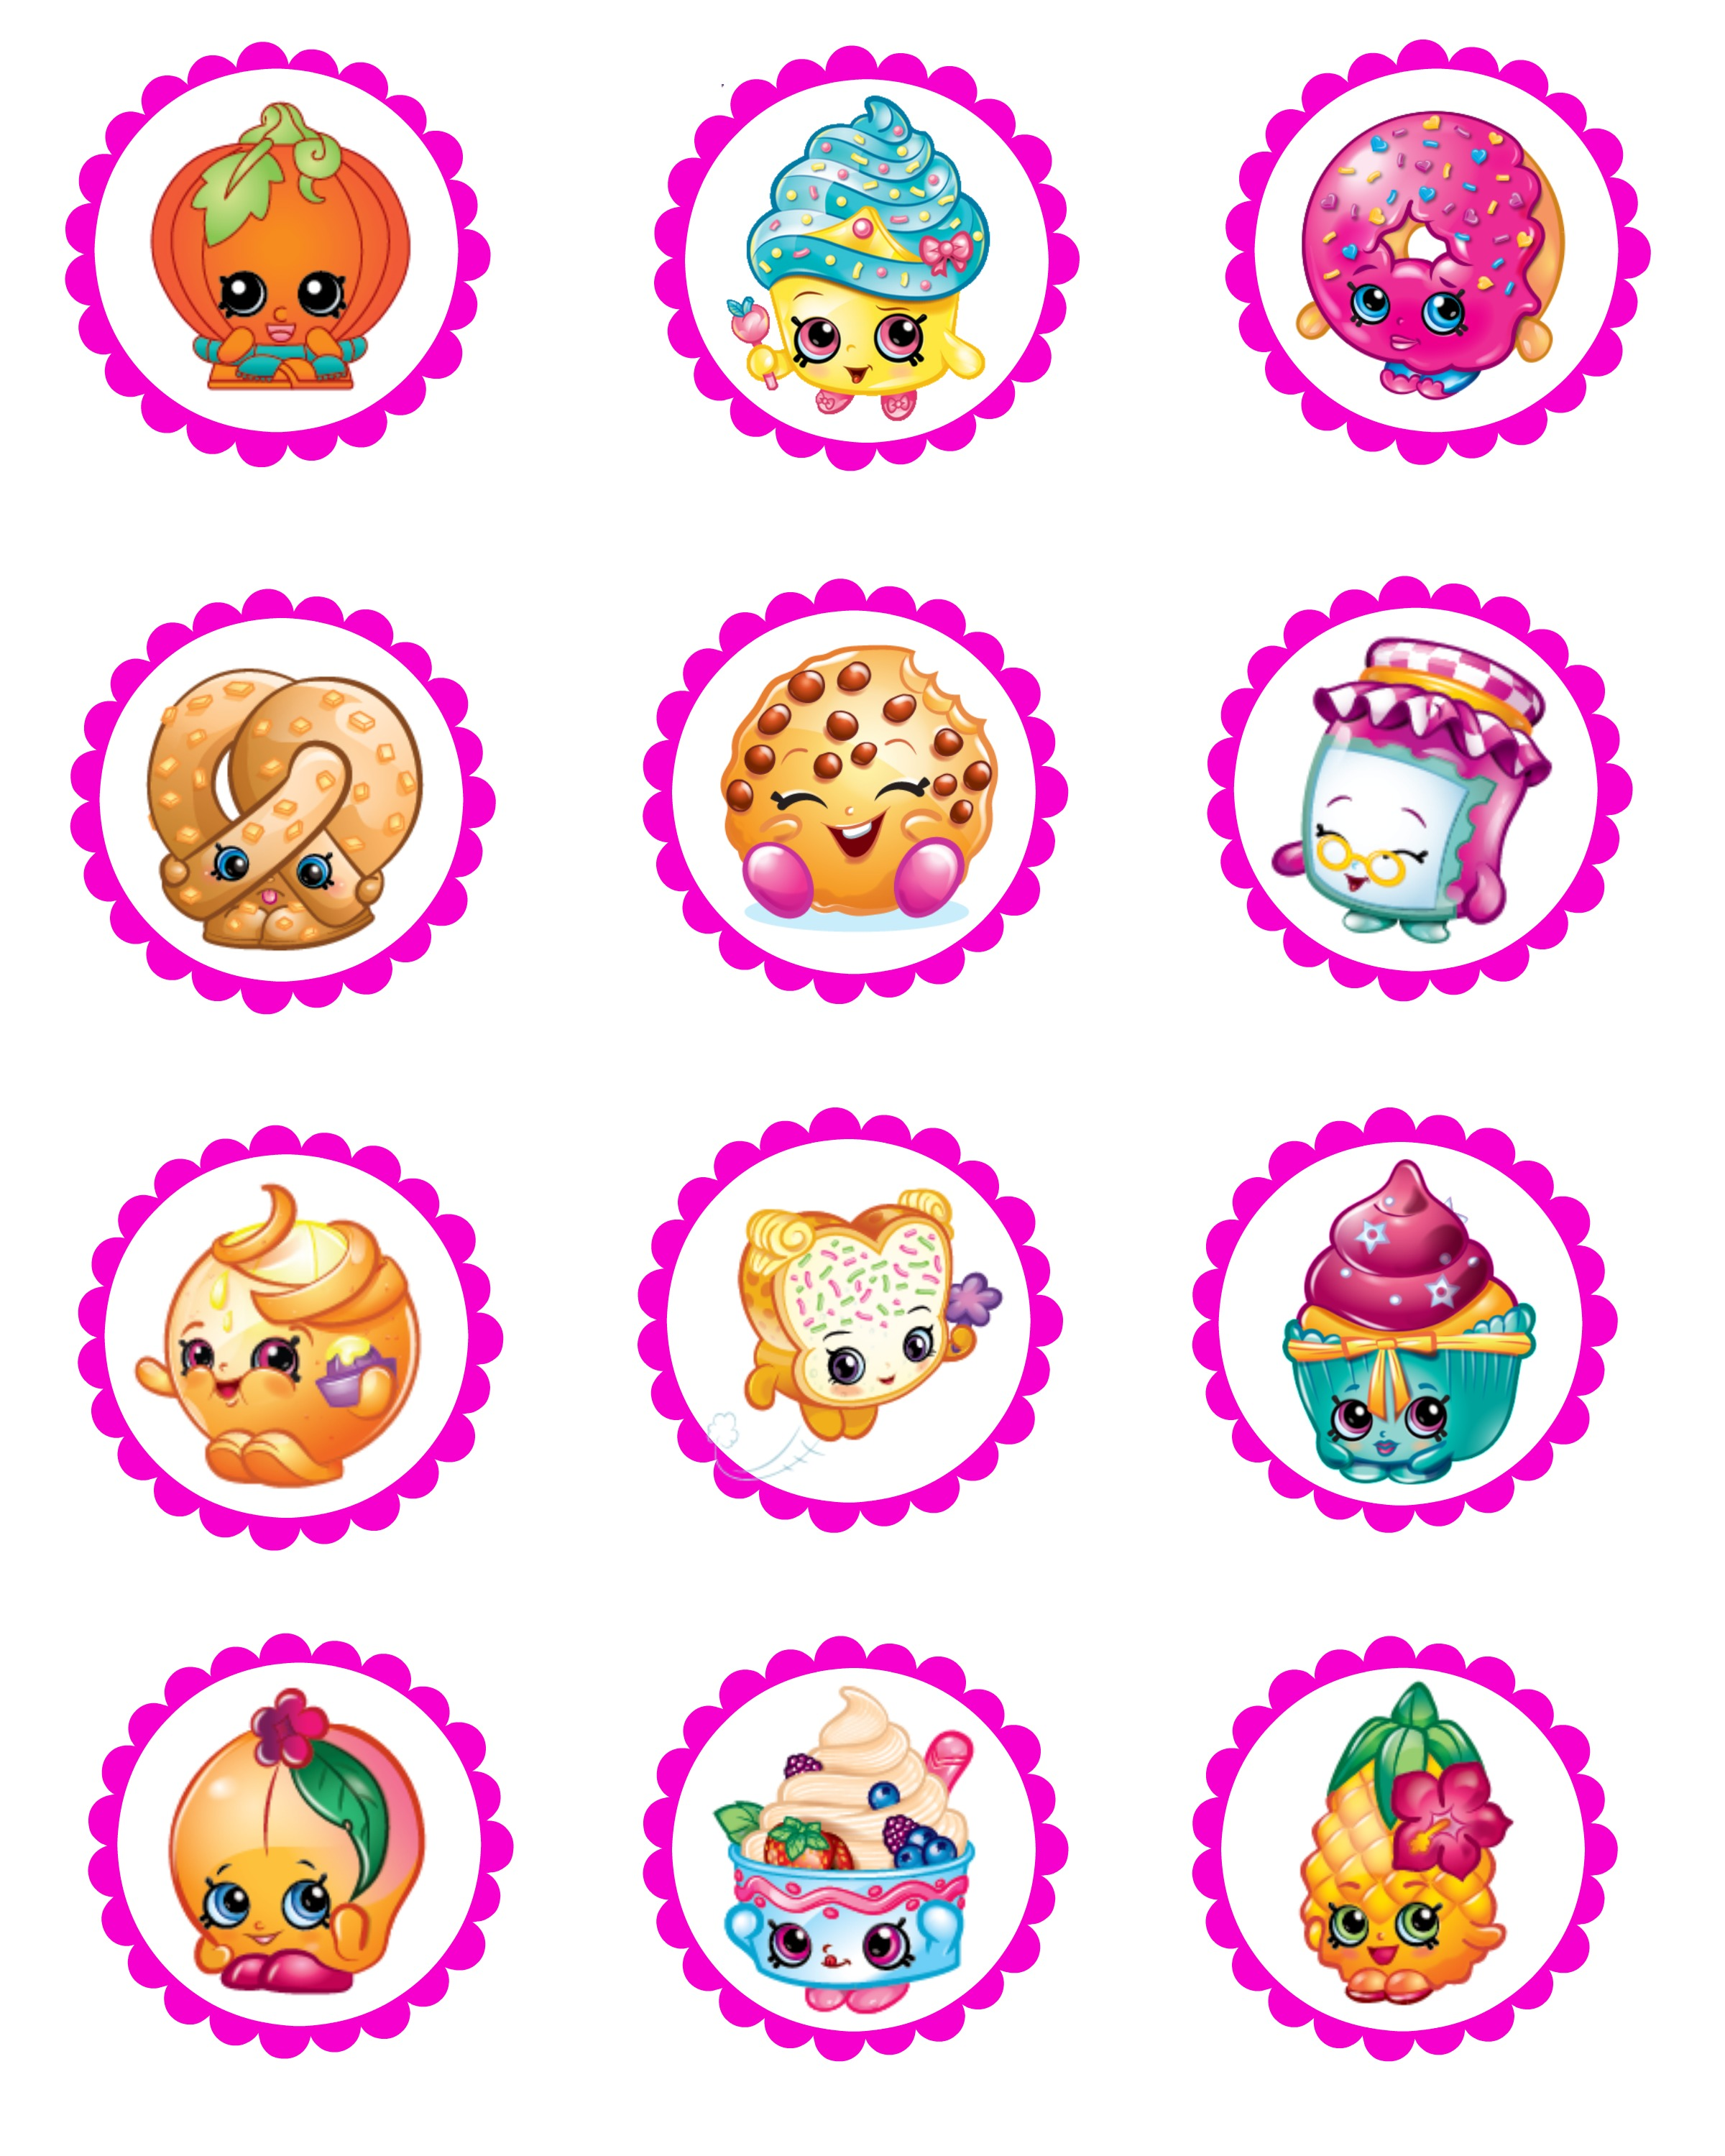 It's just a picture of Free Printable Shopkins Food Labels within easy